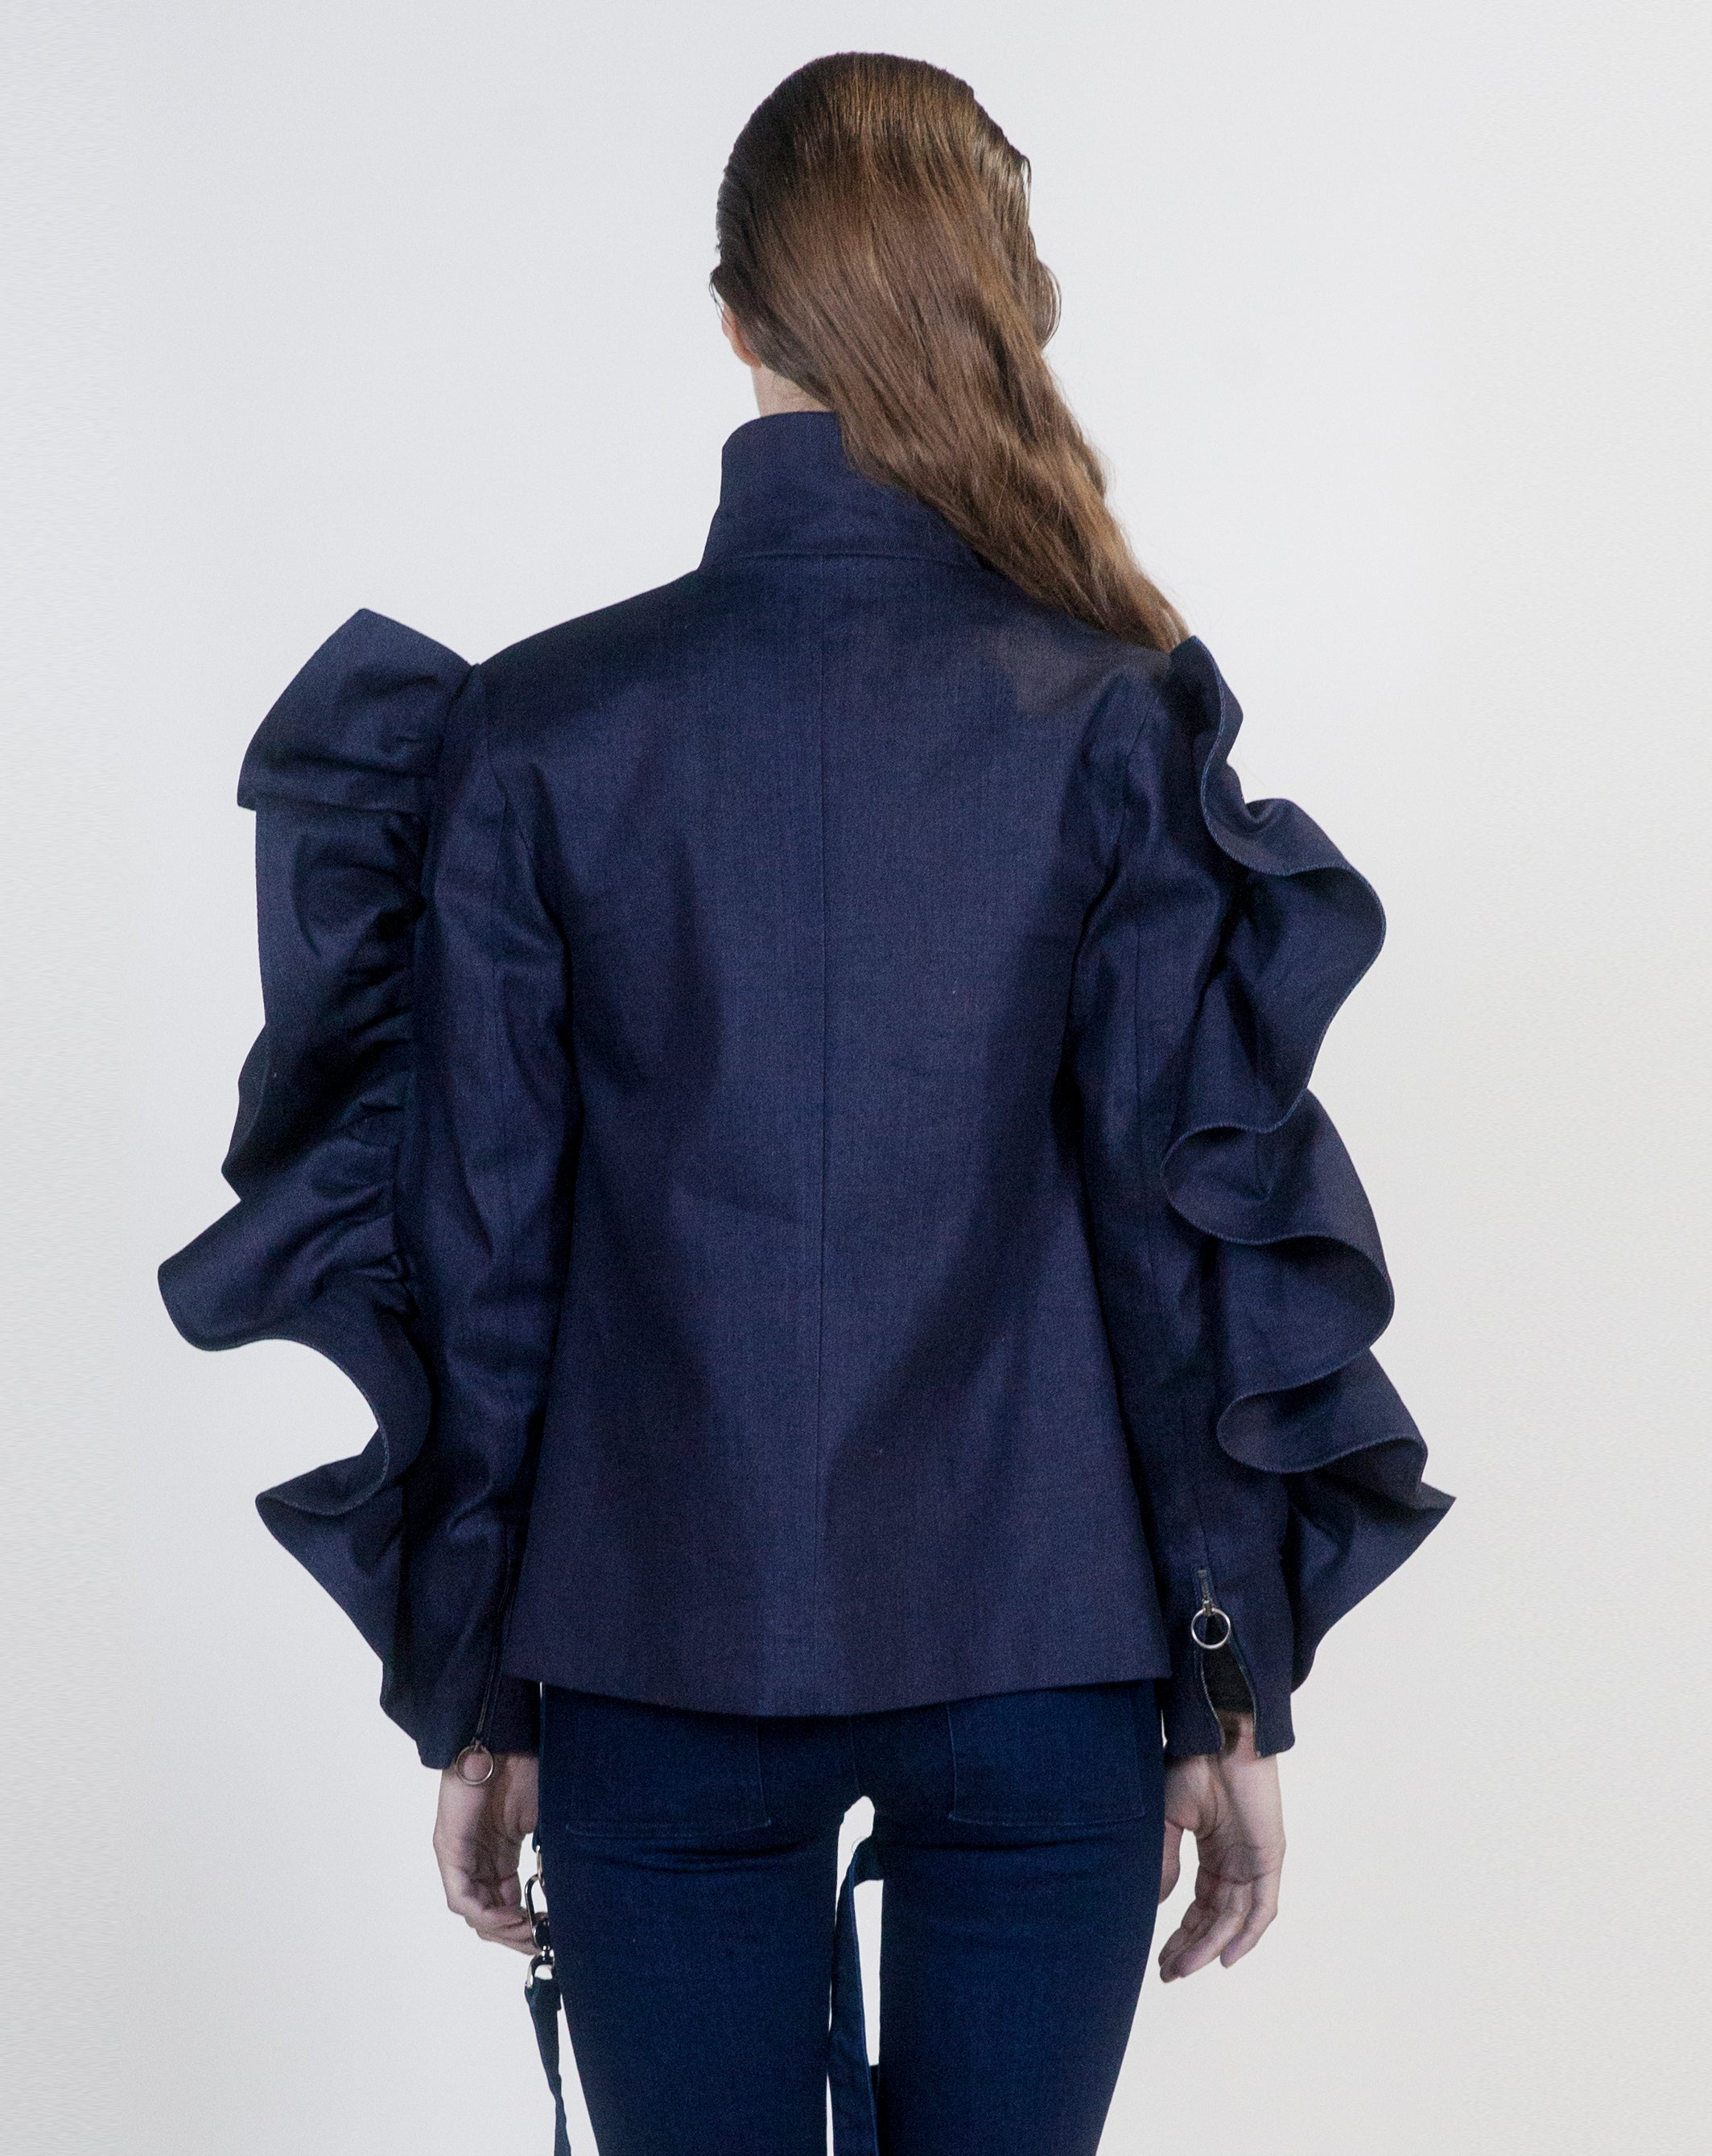 Denim Oversized Ruffle Jacket - Arianne Elmy